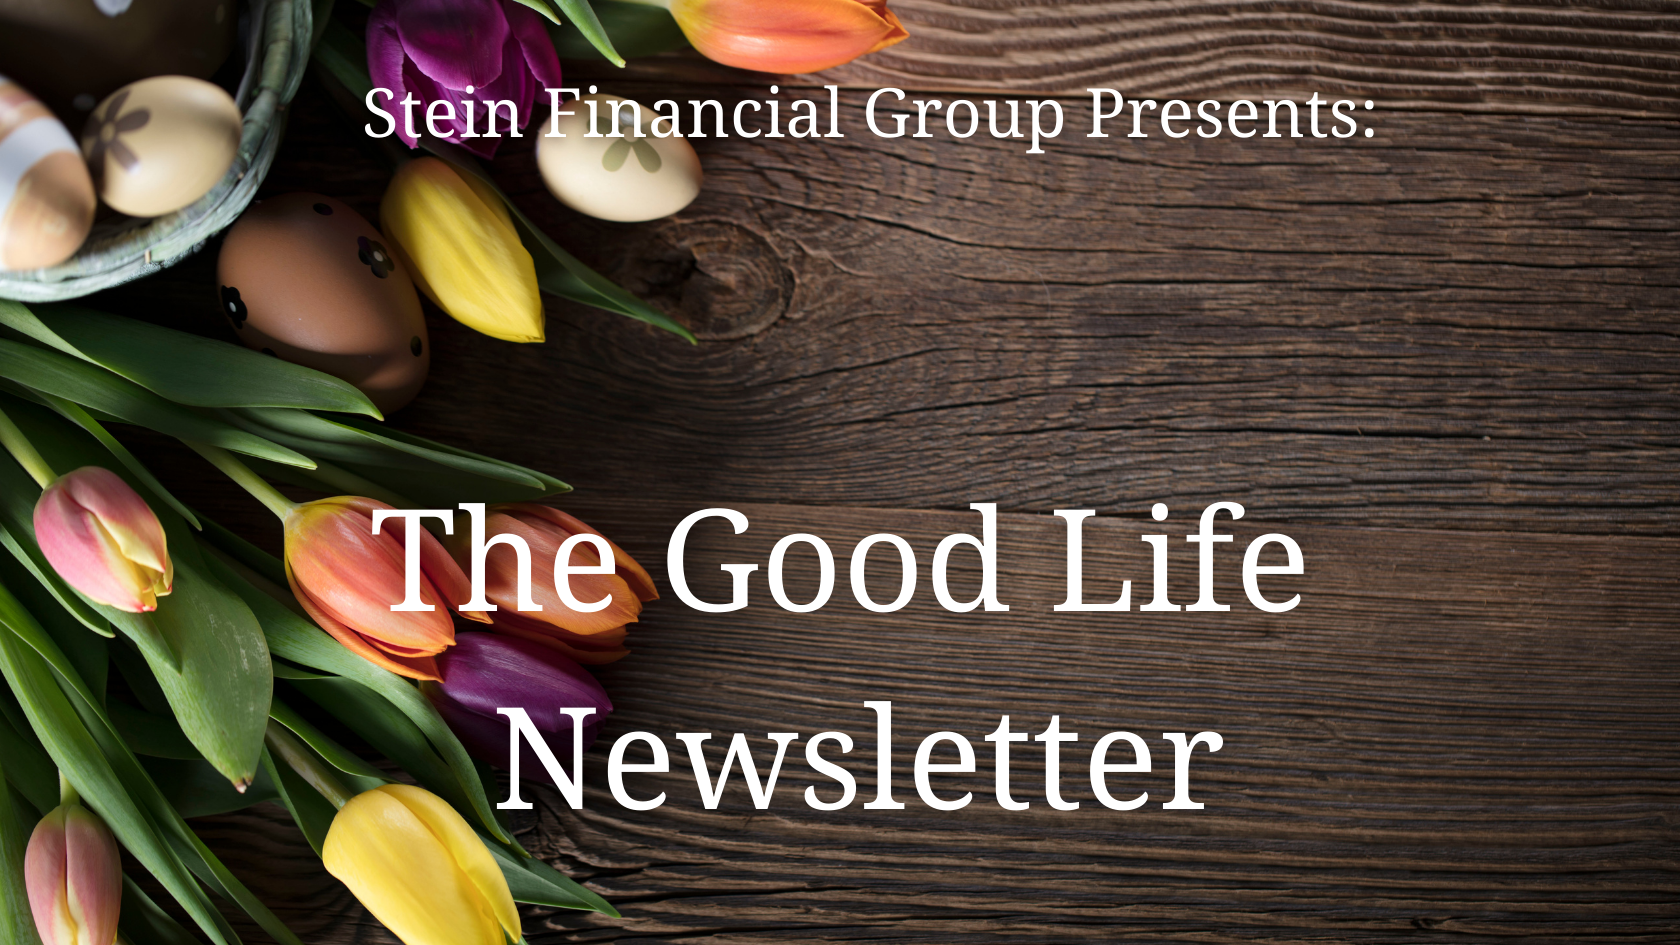 The Good Life Newsletter - A First for the S&P 500 Index Thumbnail